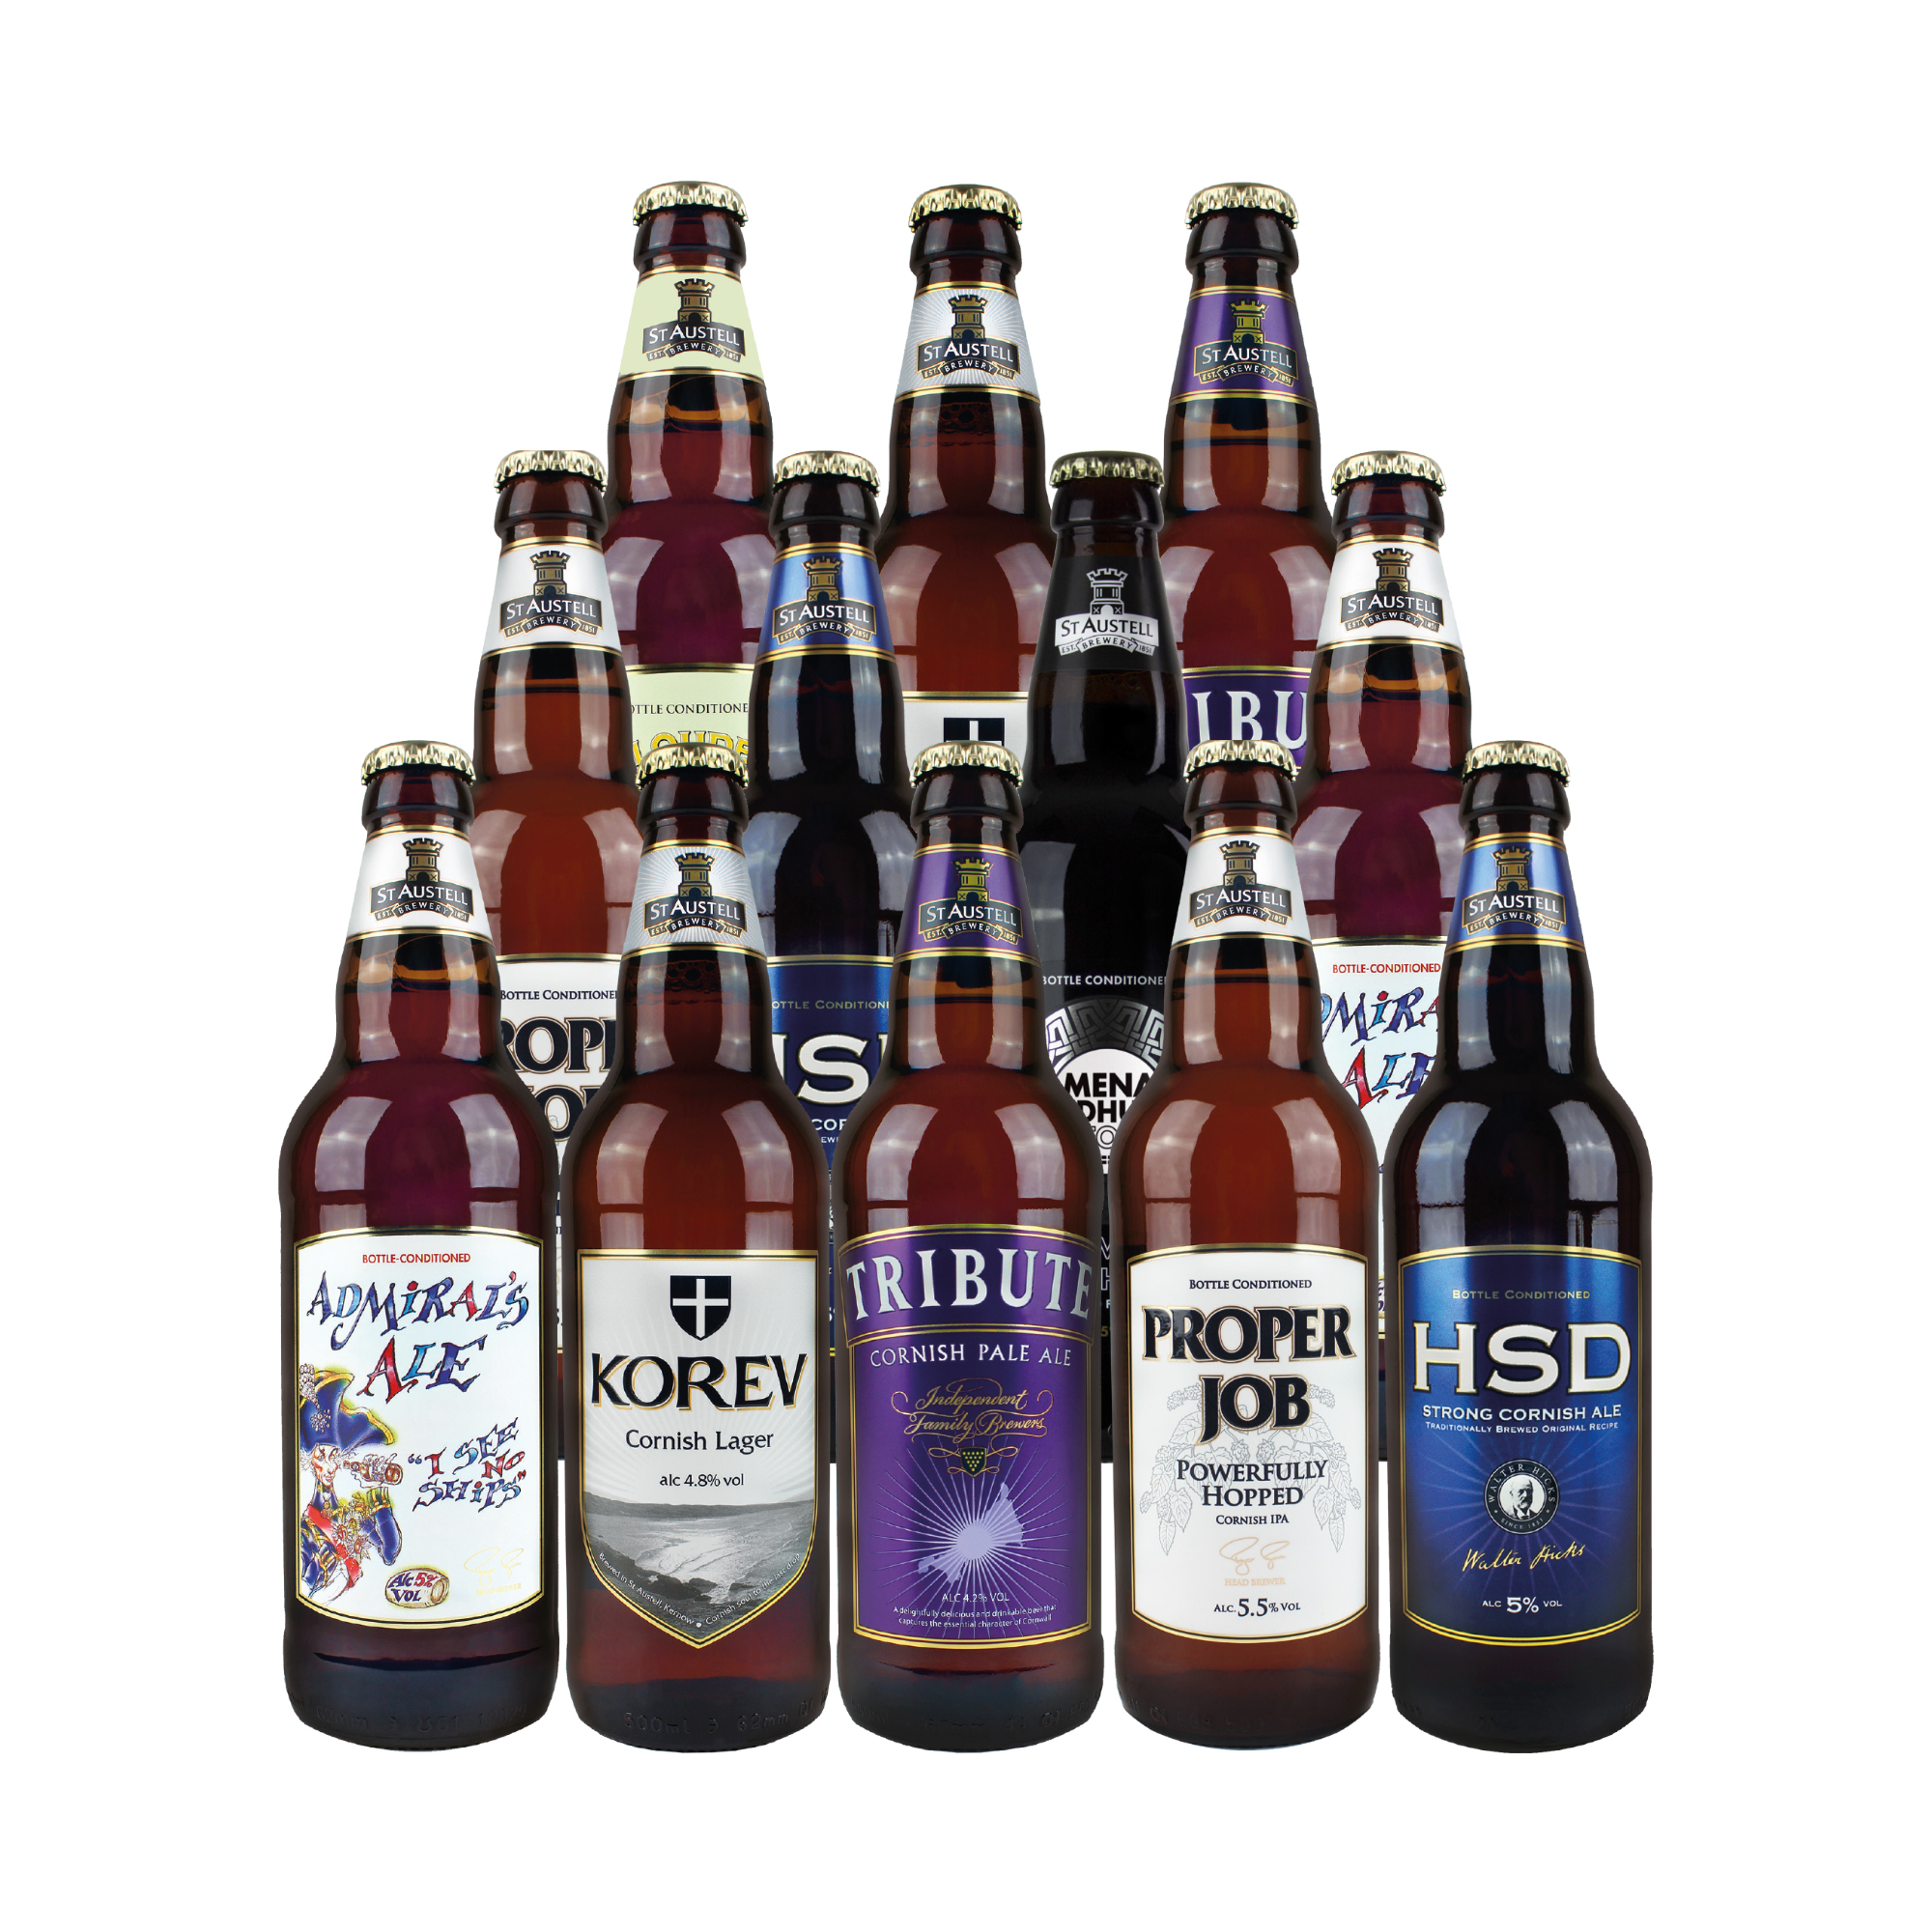 St Austell Brewery Mixed Beers Case